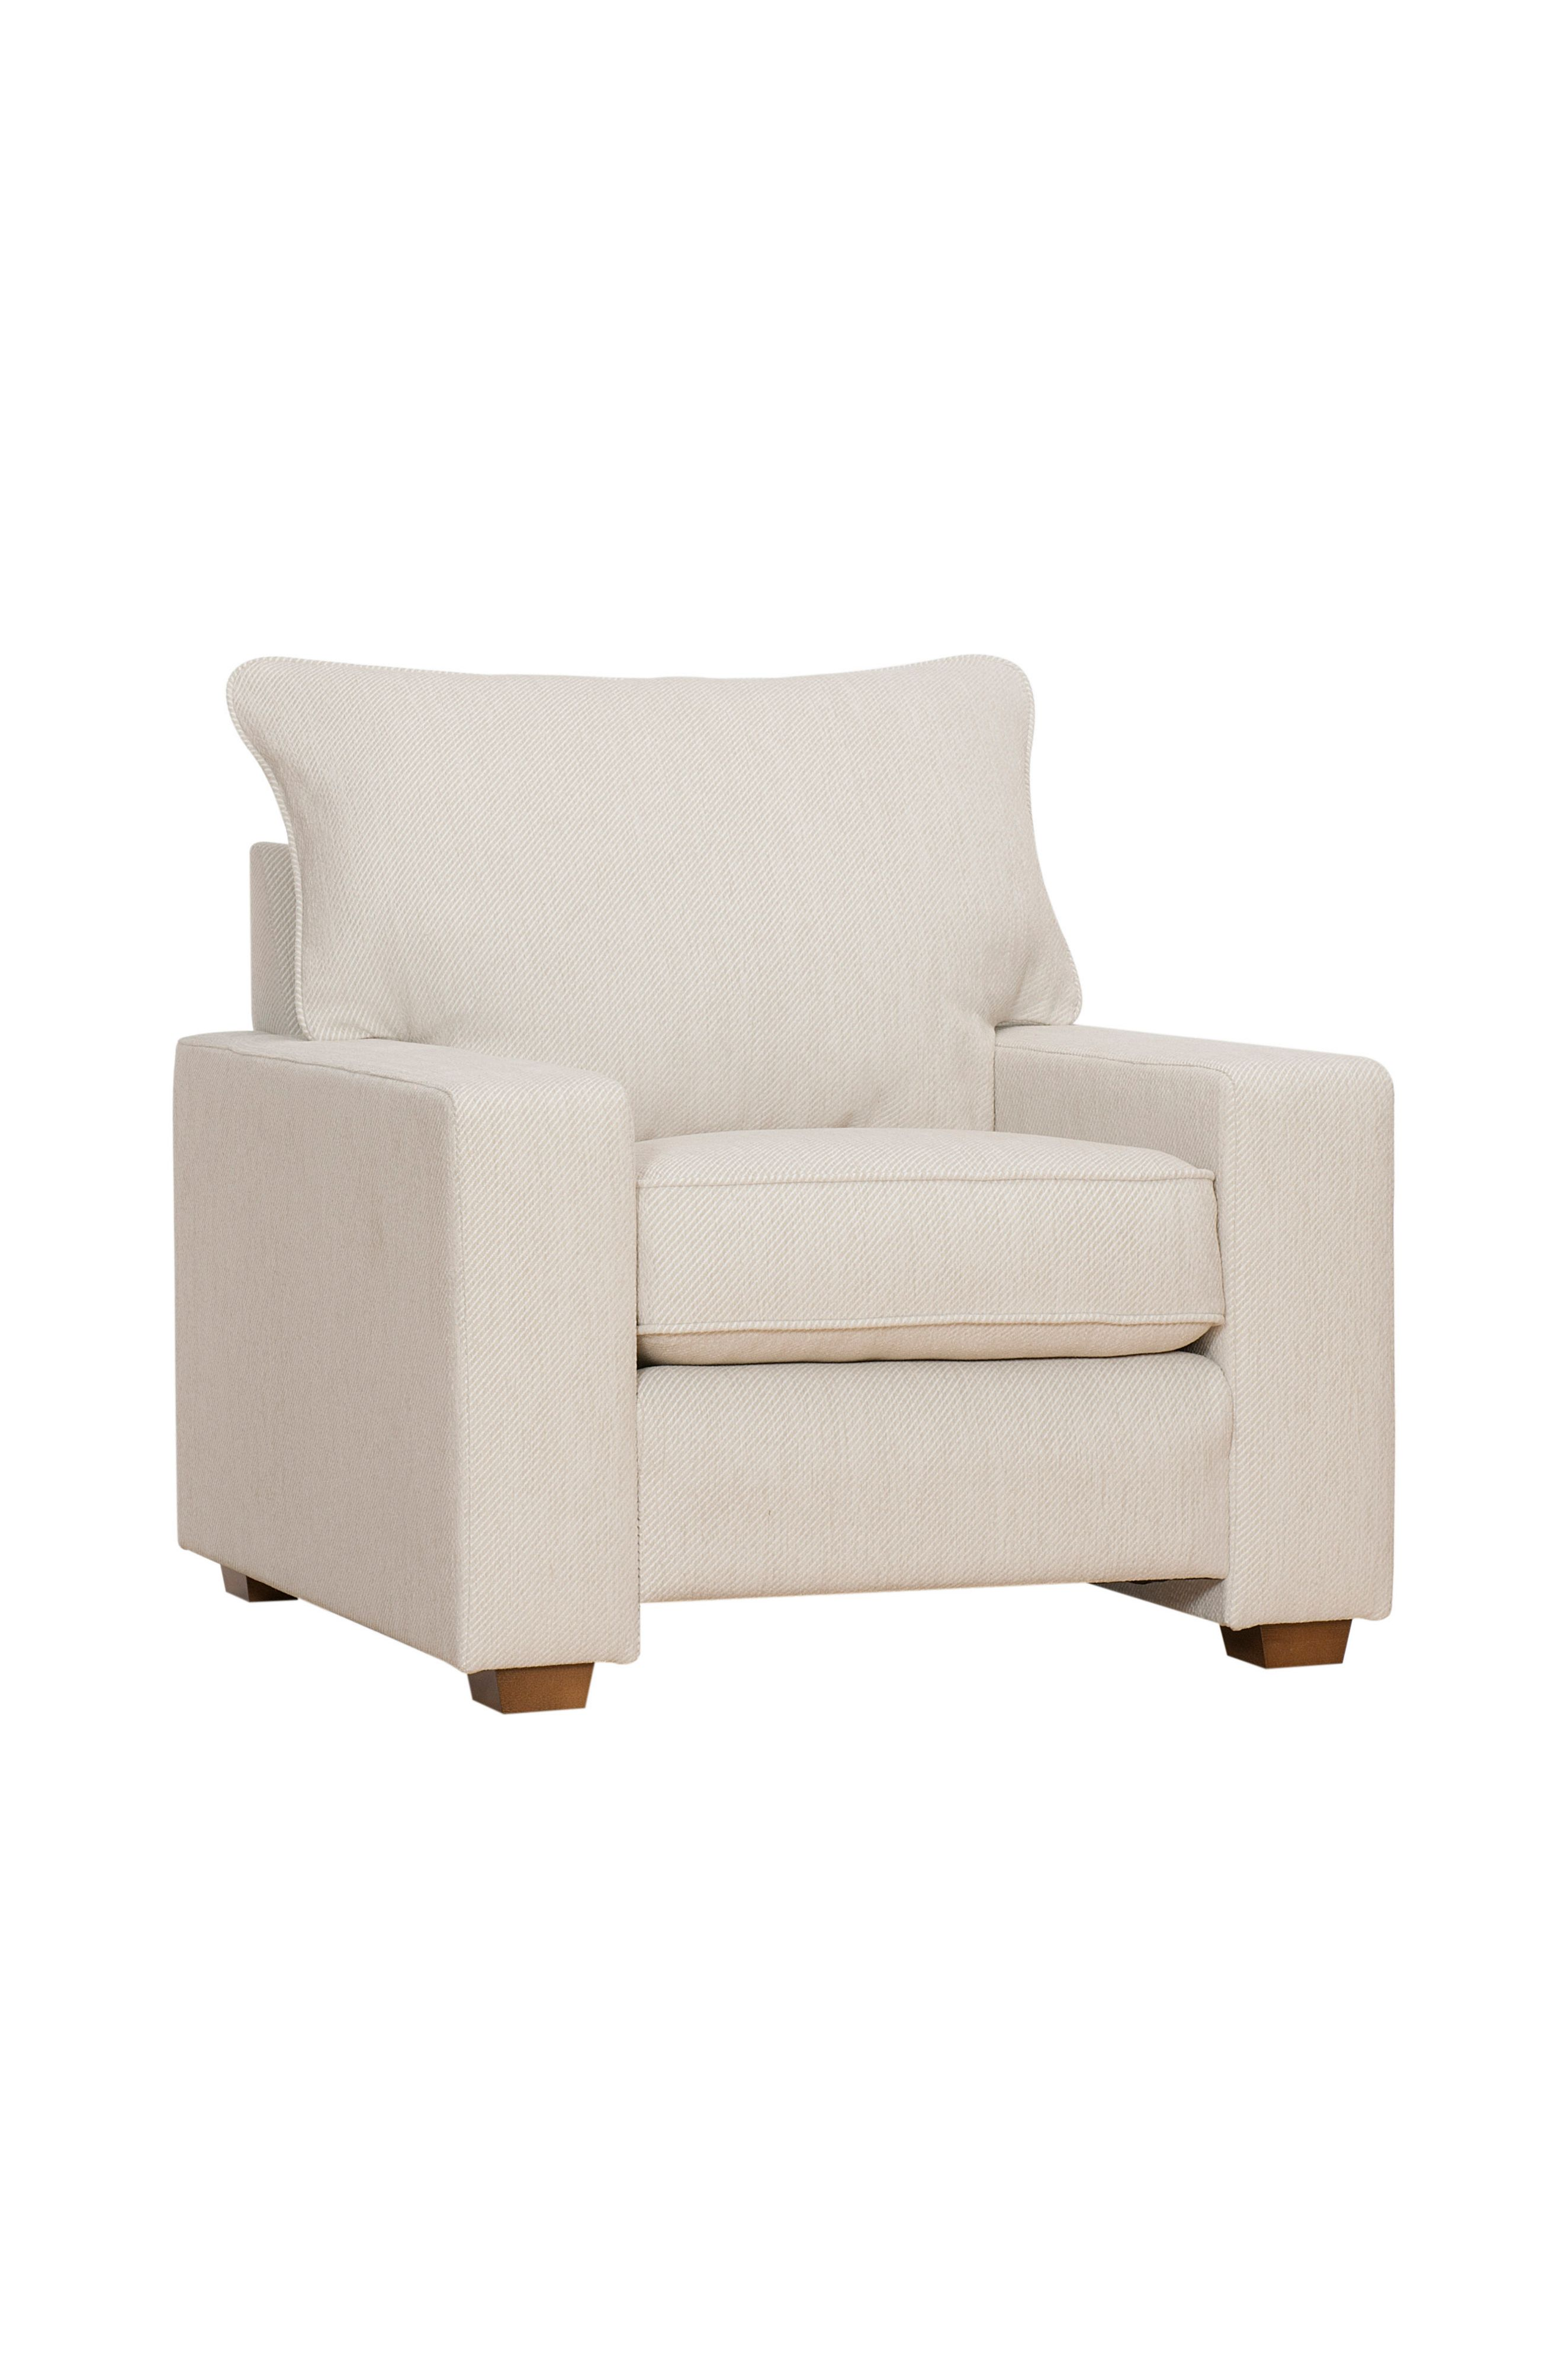 Petra chair cream